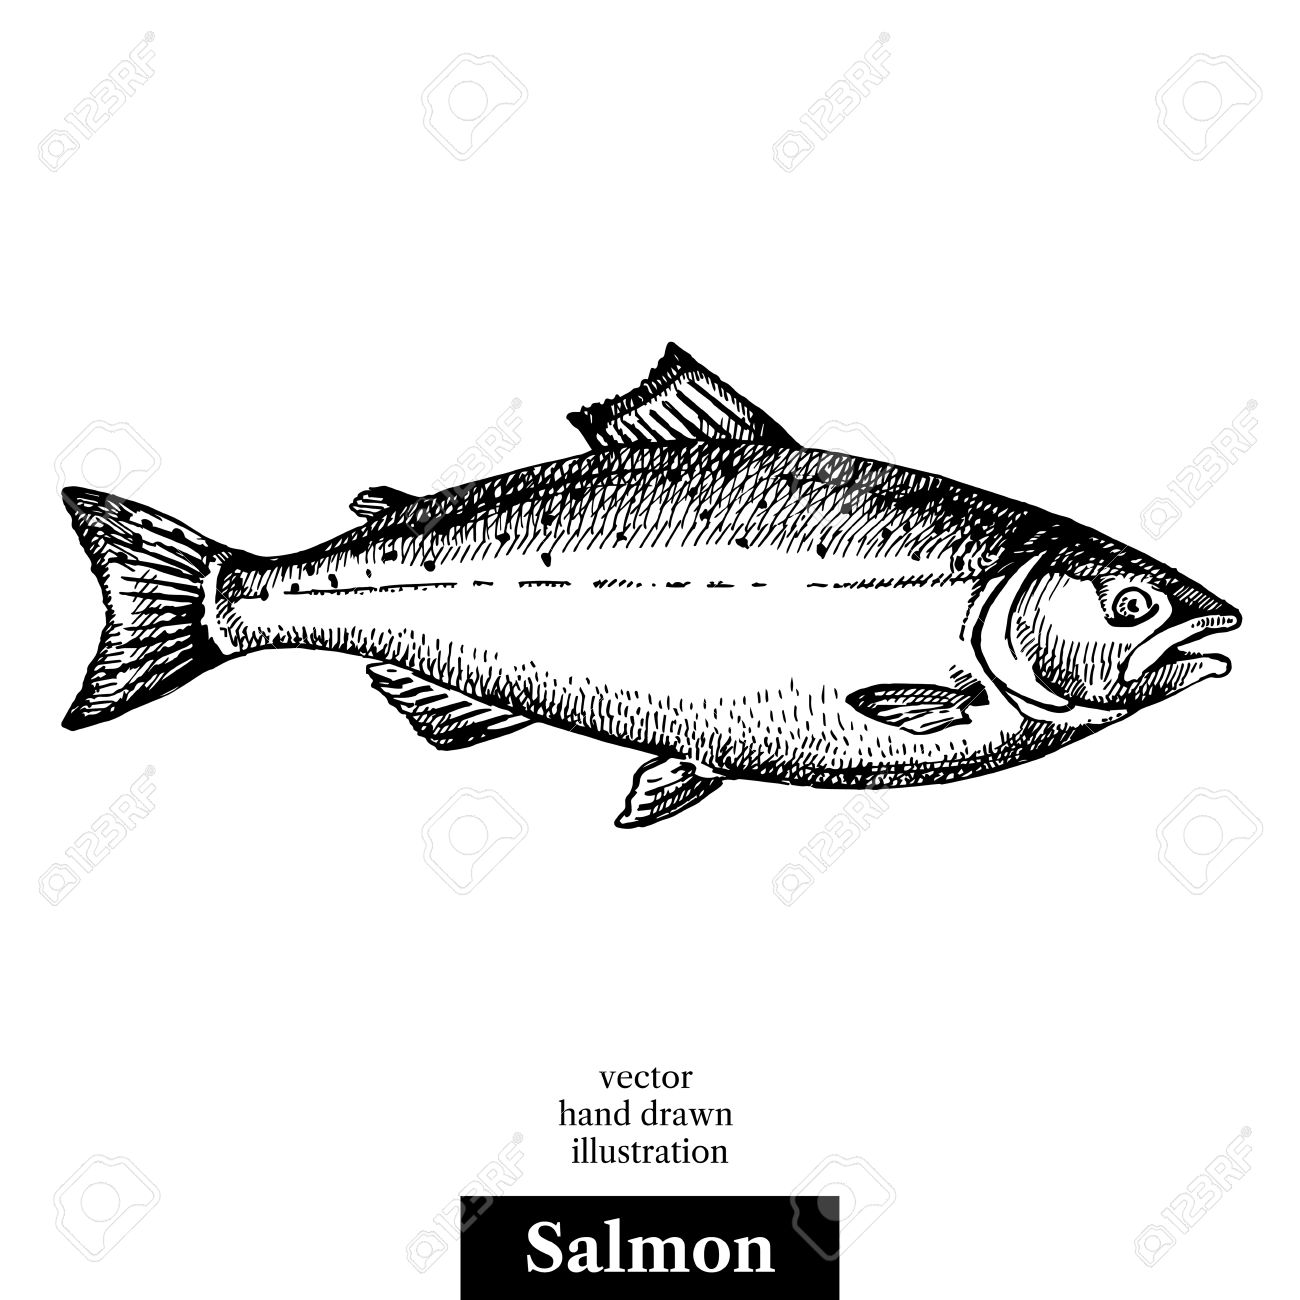 Hand drawn sketch seafood vector black and white vintage illustration of salmon fish. Isolated object on white background. Menu design - 60555720